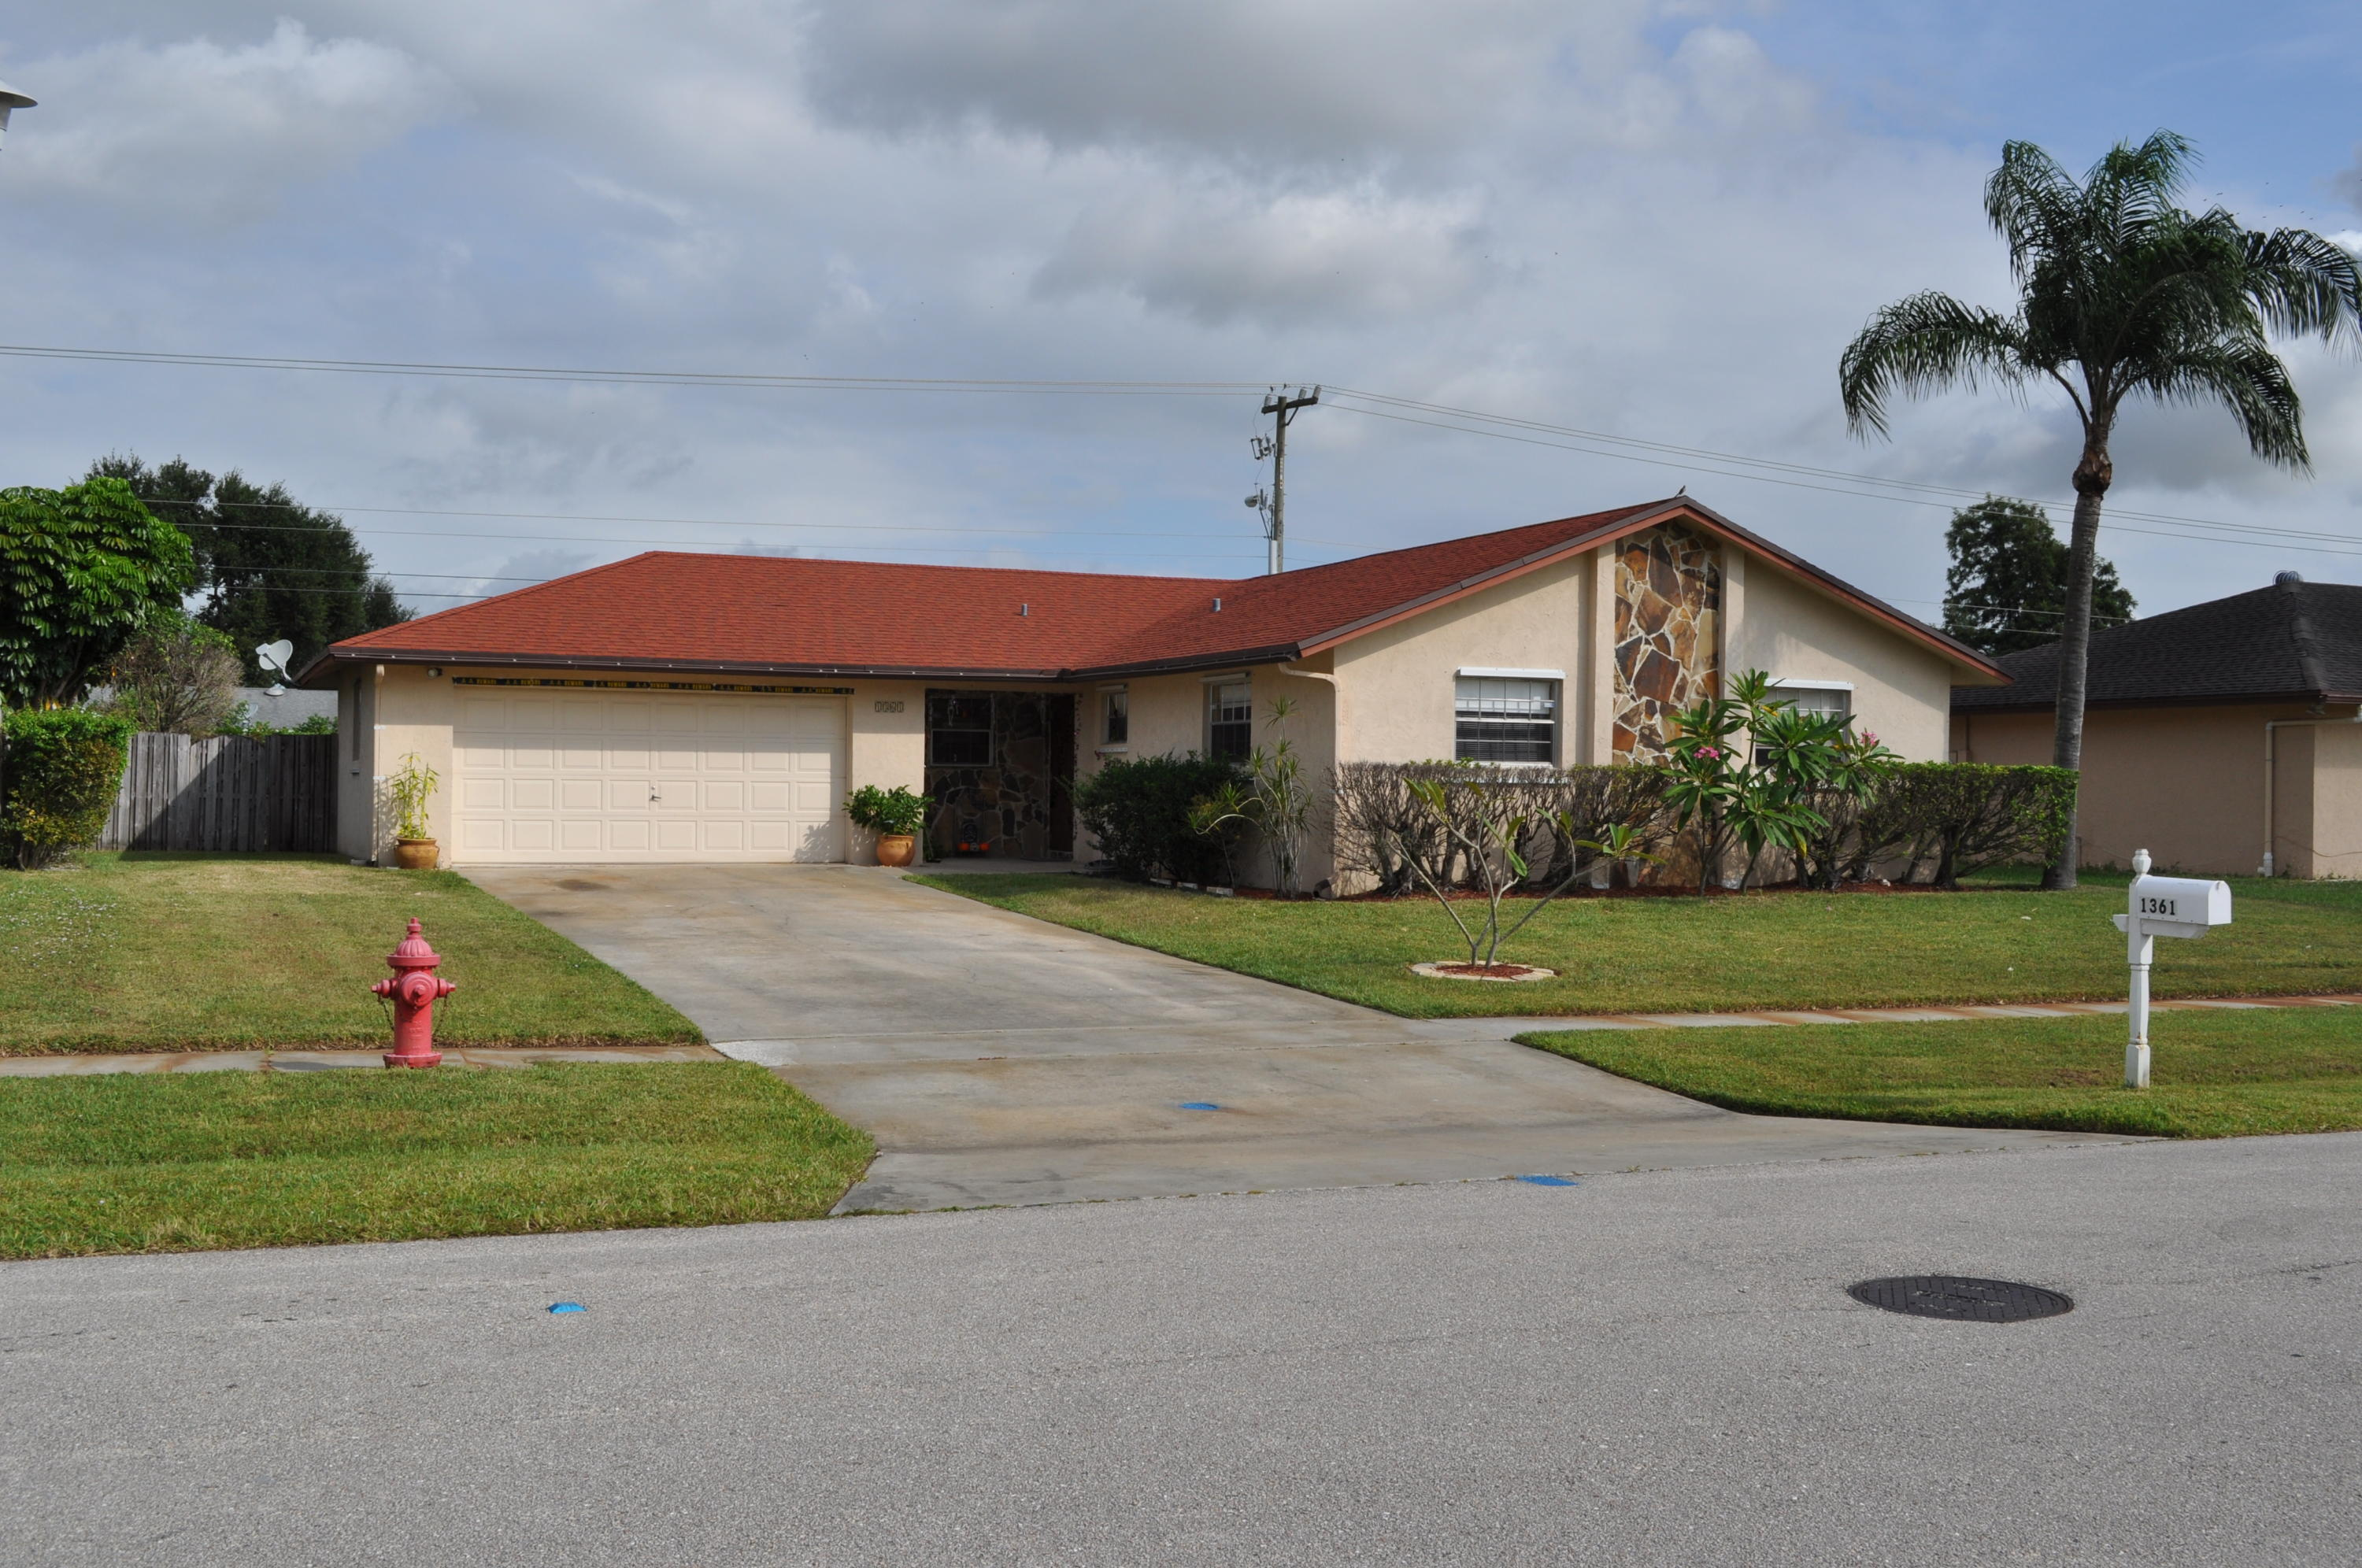 1361 Wyndcliff Drive, Wellington, Florida 33414, 3 Bedrooms Bedrooms, ,2 BathroomsBathrooms,Single Family,For Rent,Wyndcliff,1,RX-10555374